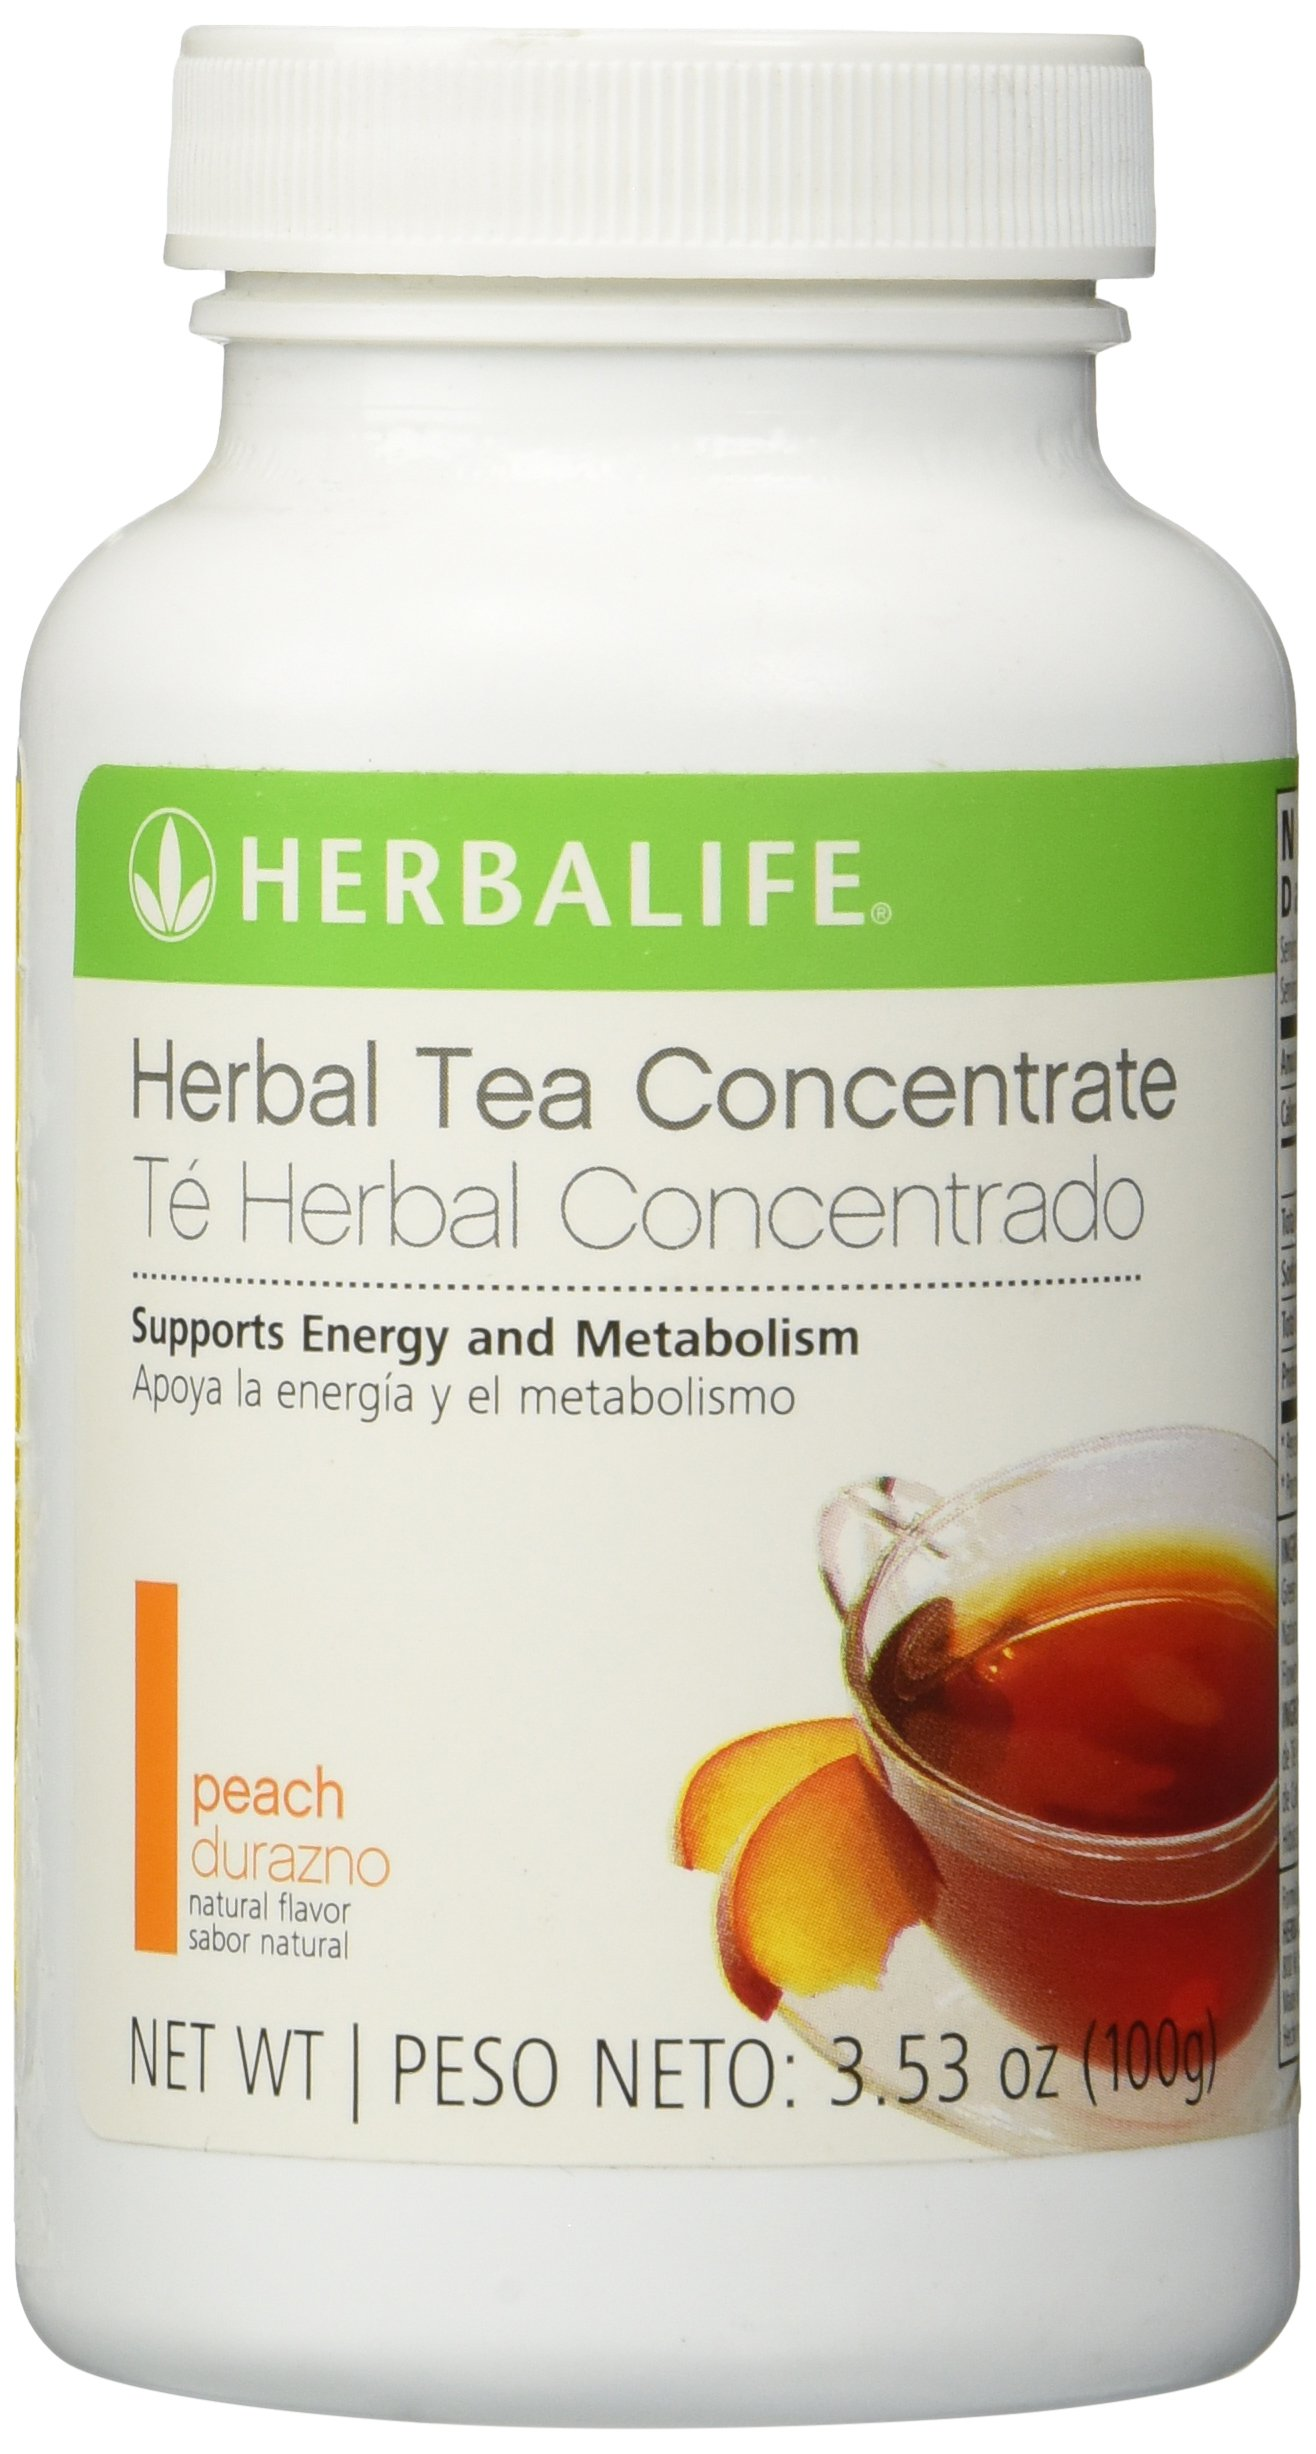 Herbalife, Herbal Concentrate Tea, Peach, 3.53 oz (100 g) by Shapeworks